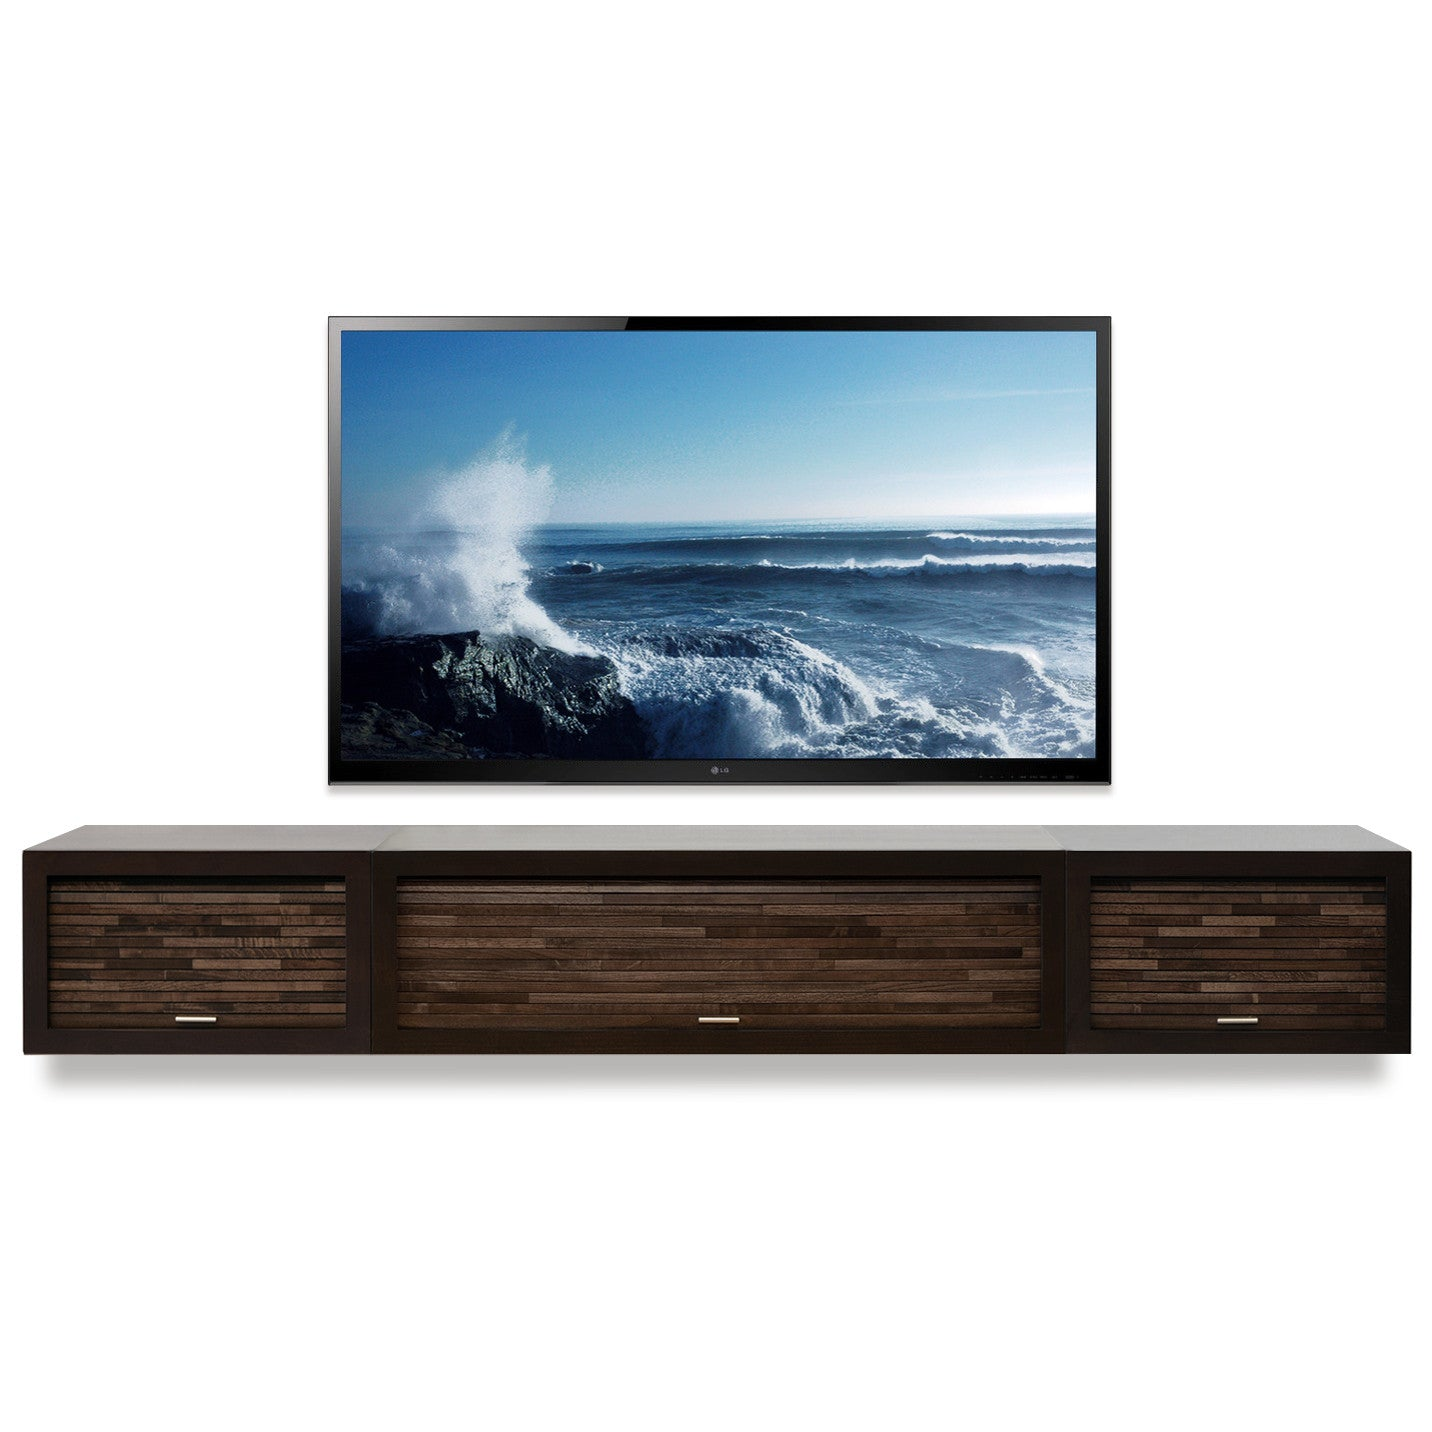 Image of: Wall Mounted Floating Tv Stands Woodwaves